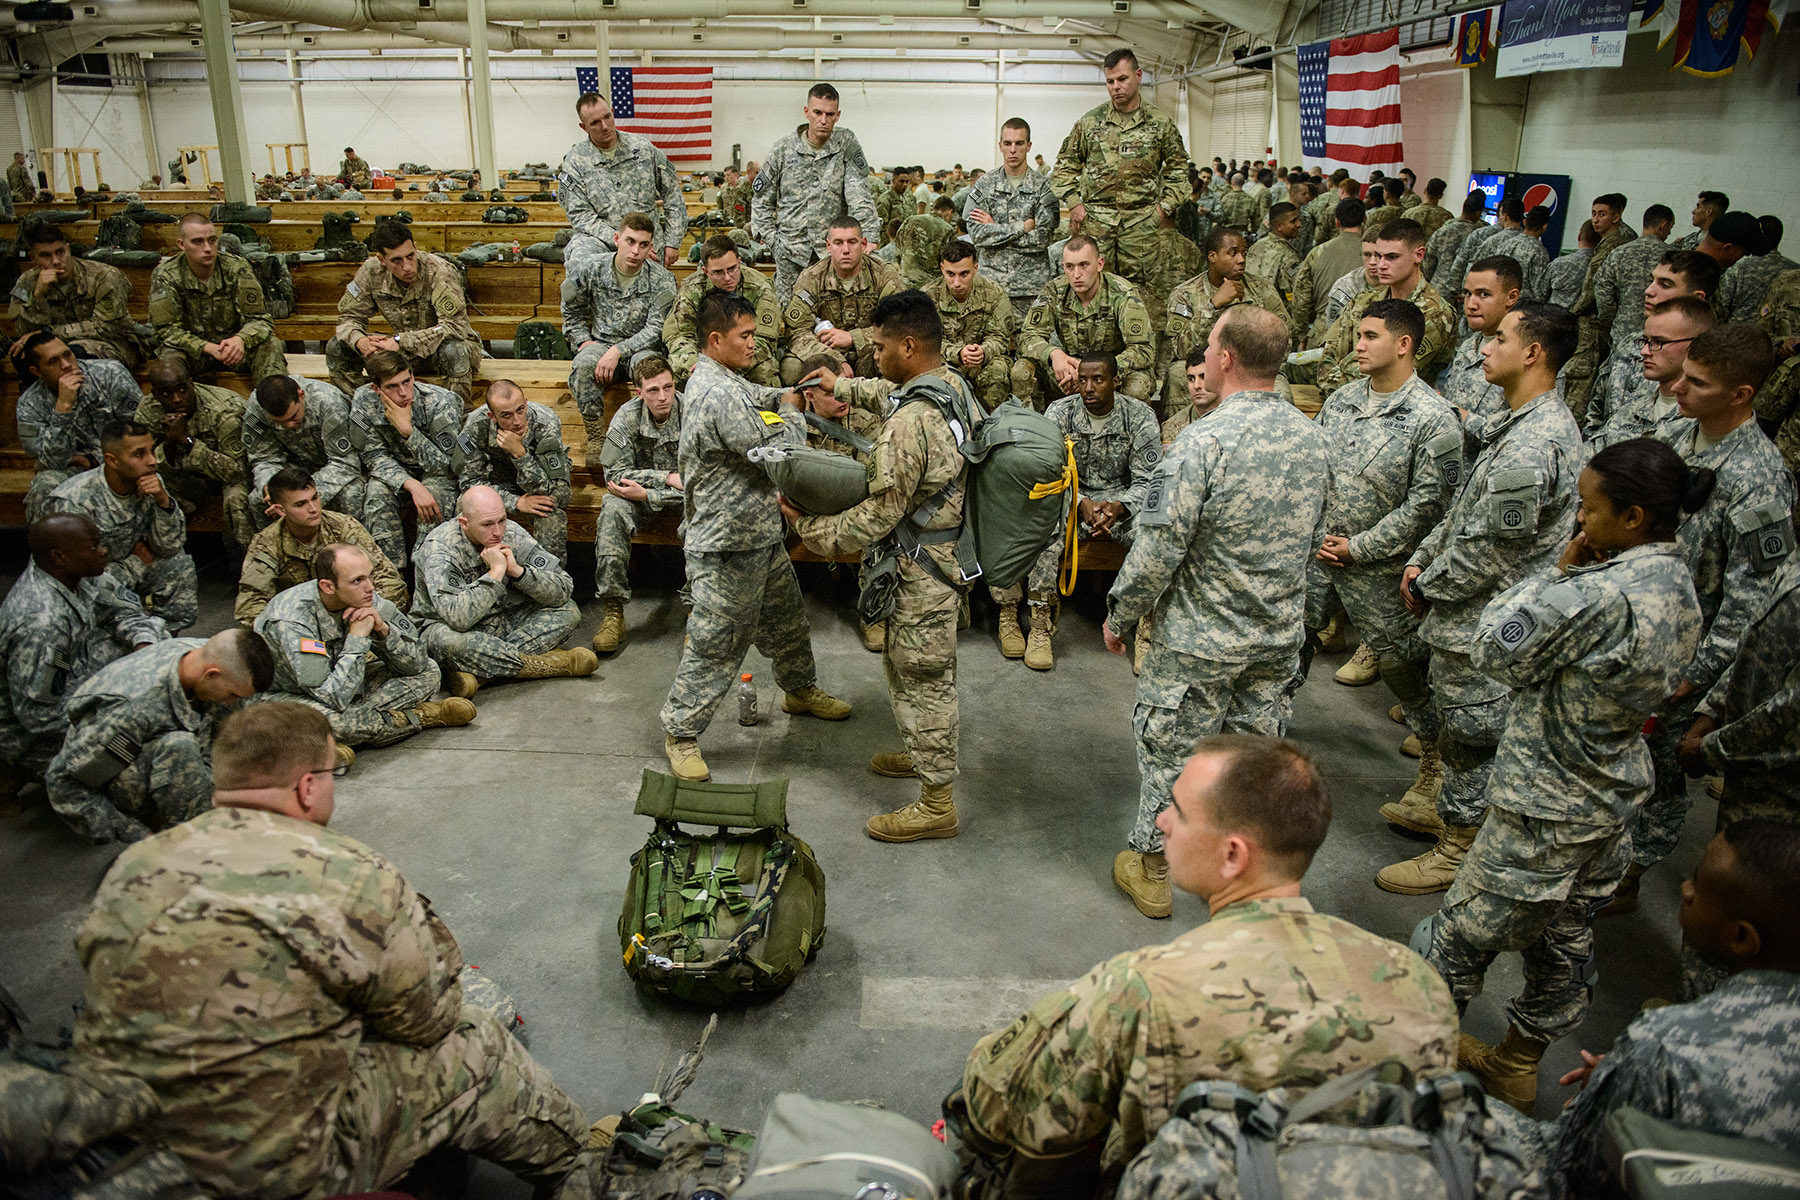 First Place | Multiple PhotosAndrew Craft, The Fayetteville Observer2nd Brigade Combat Team paratroopers watch a demonstration of putting on a proper rig at Green Ramp before heading to Zaragoza, Spain, Tuesday, Nov. 3, 2015, where they will jump in as part of Operation Trident Juncture 15. In support of Operations Trident Juncture 15 and Ultimate Reach 16, over 500 Paratroopers from the Division's 2nd Brigade Combat Team deployed from Pope Army Airfield, conducted in-flight rigging and executed a Joint Forcible Entry exercise in Zaragoza, Spain.